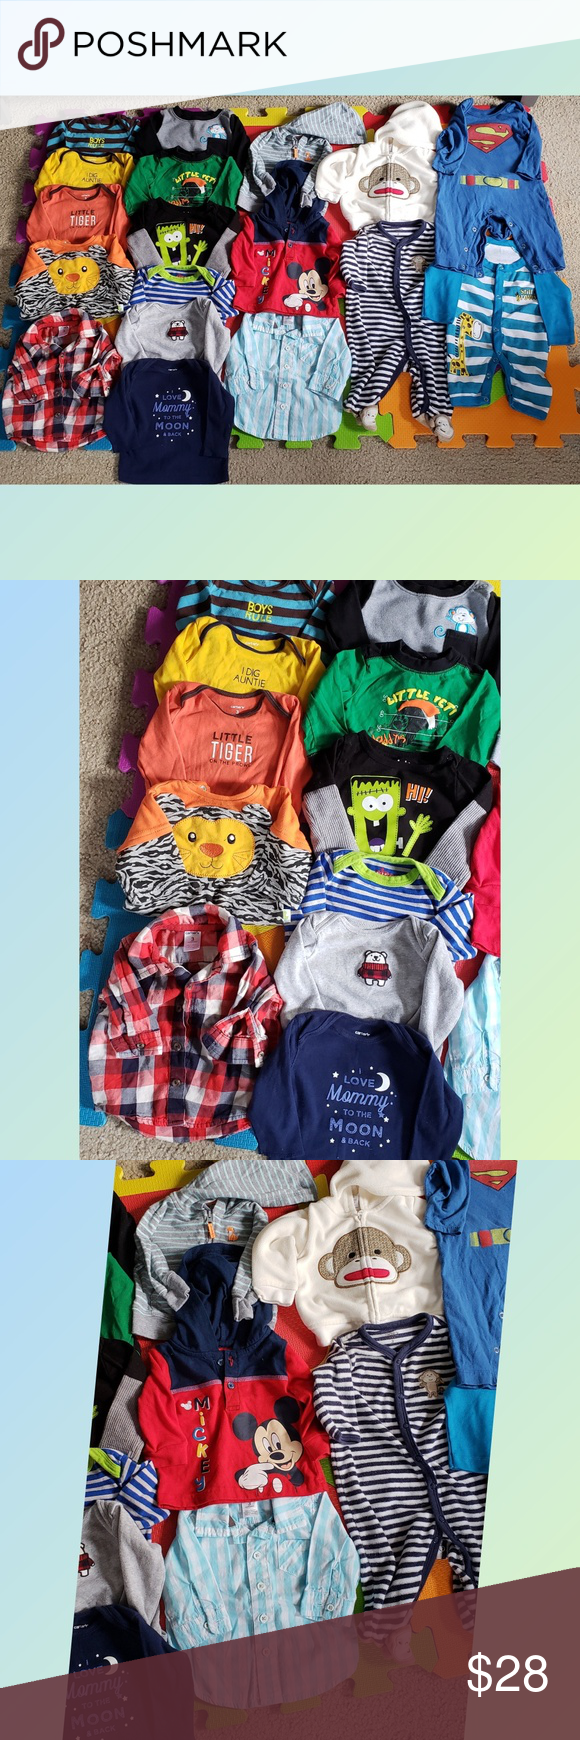 d2e9669d94 Baby boy cold weather bundle All EUC 9 LONG SLEEVE ONESIE 2 FLANNEL 1 LONG  SLEEVE